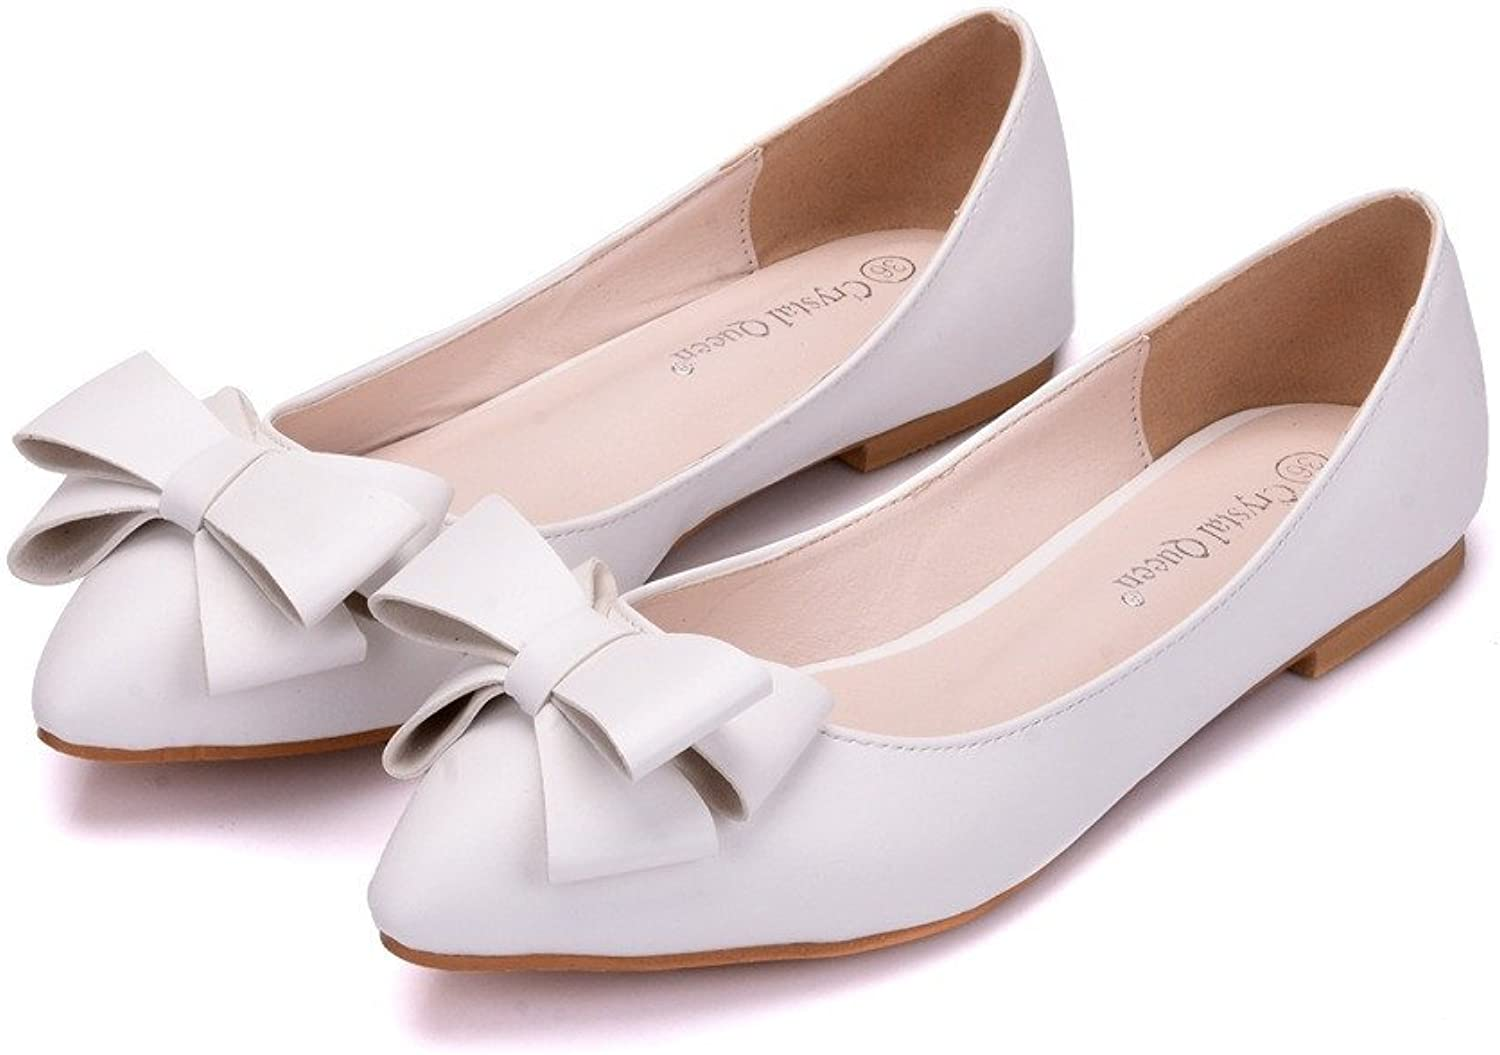 HYP Wedding Women shoes Wedding shoes Women Pumps Closed Toe Wedding Party Court shoes Bridesmaid Bridal shoes Tip with a Flat Base